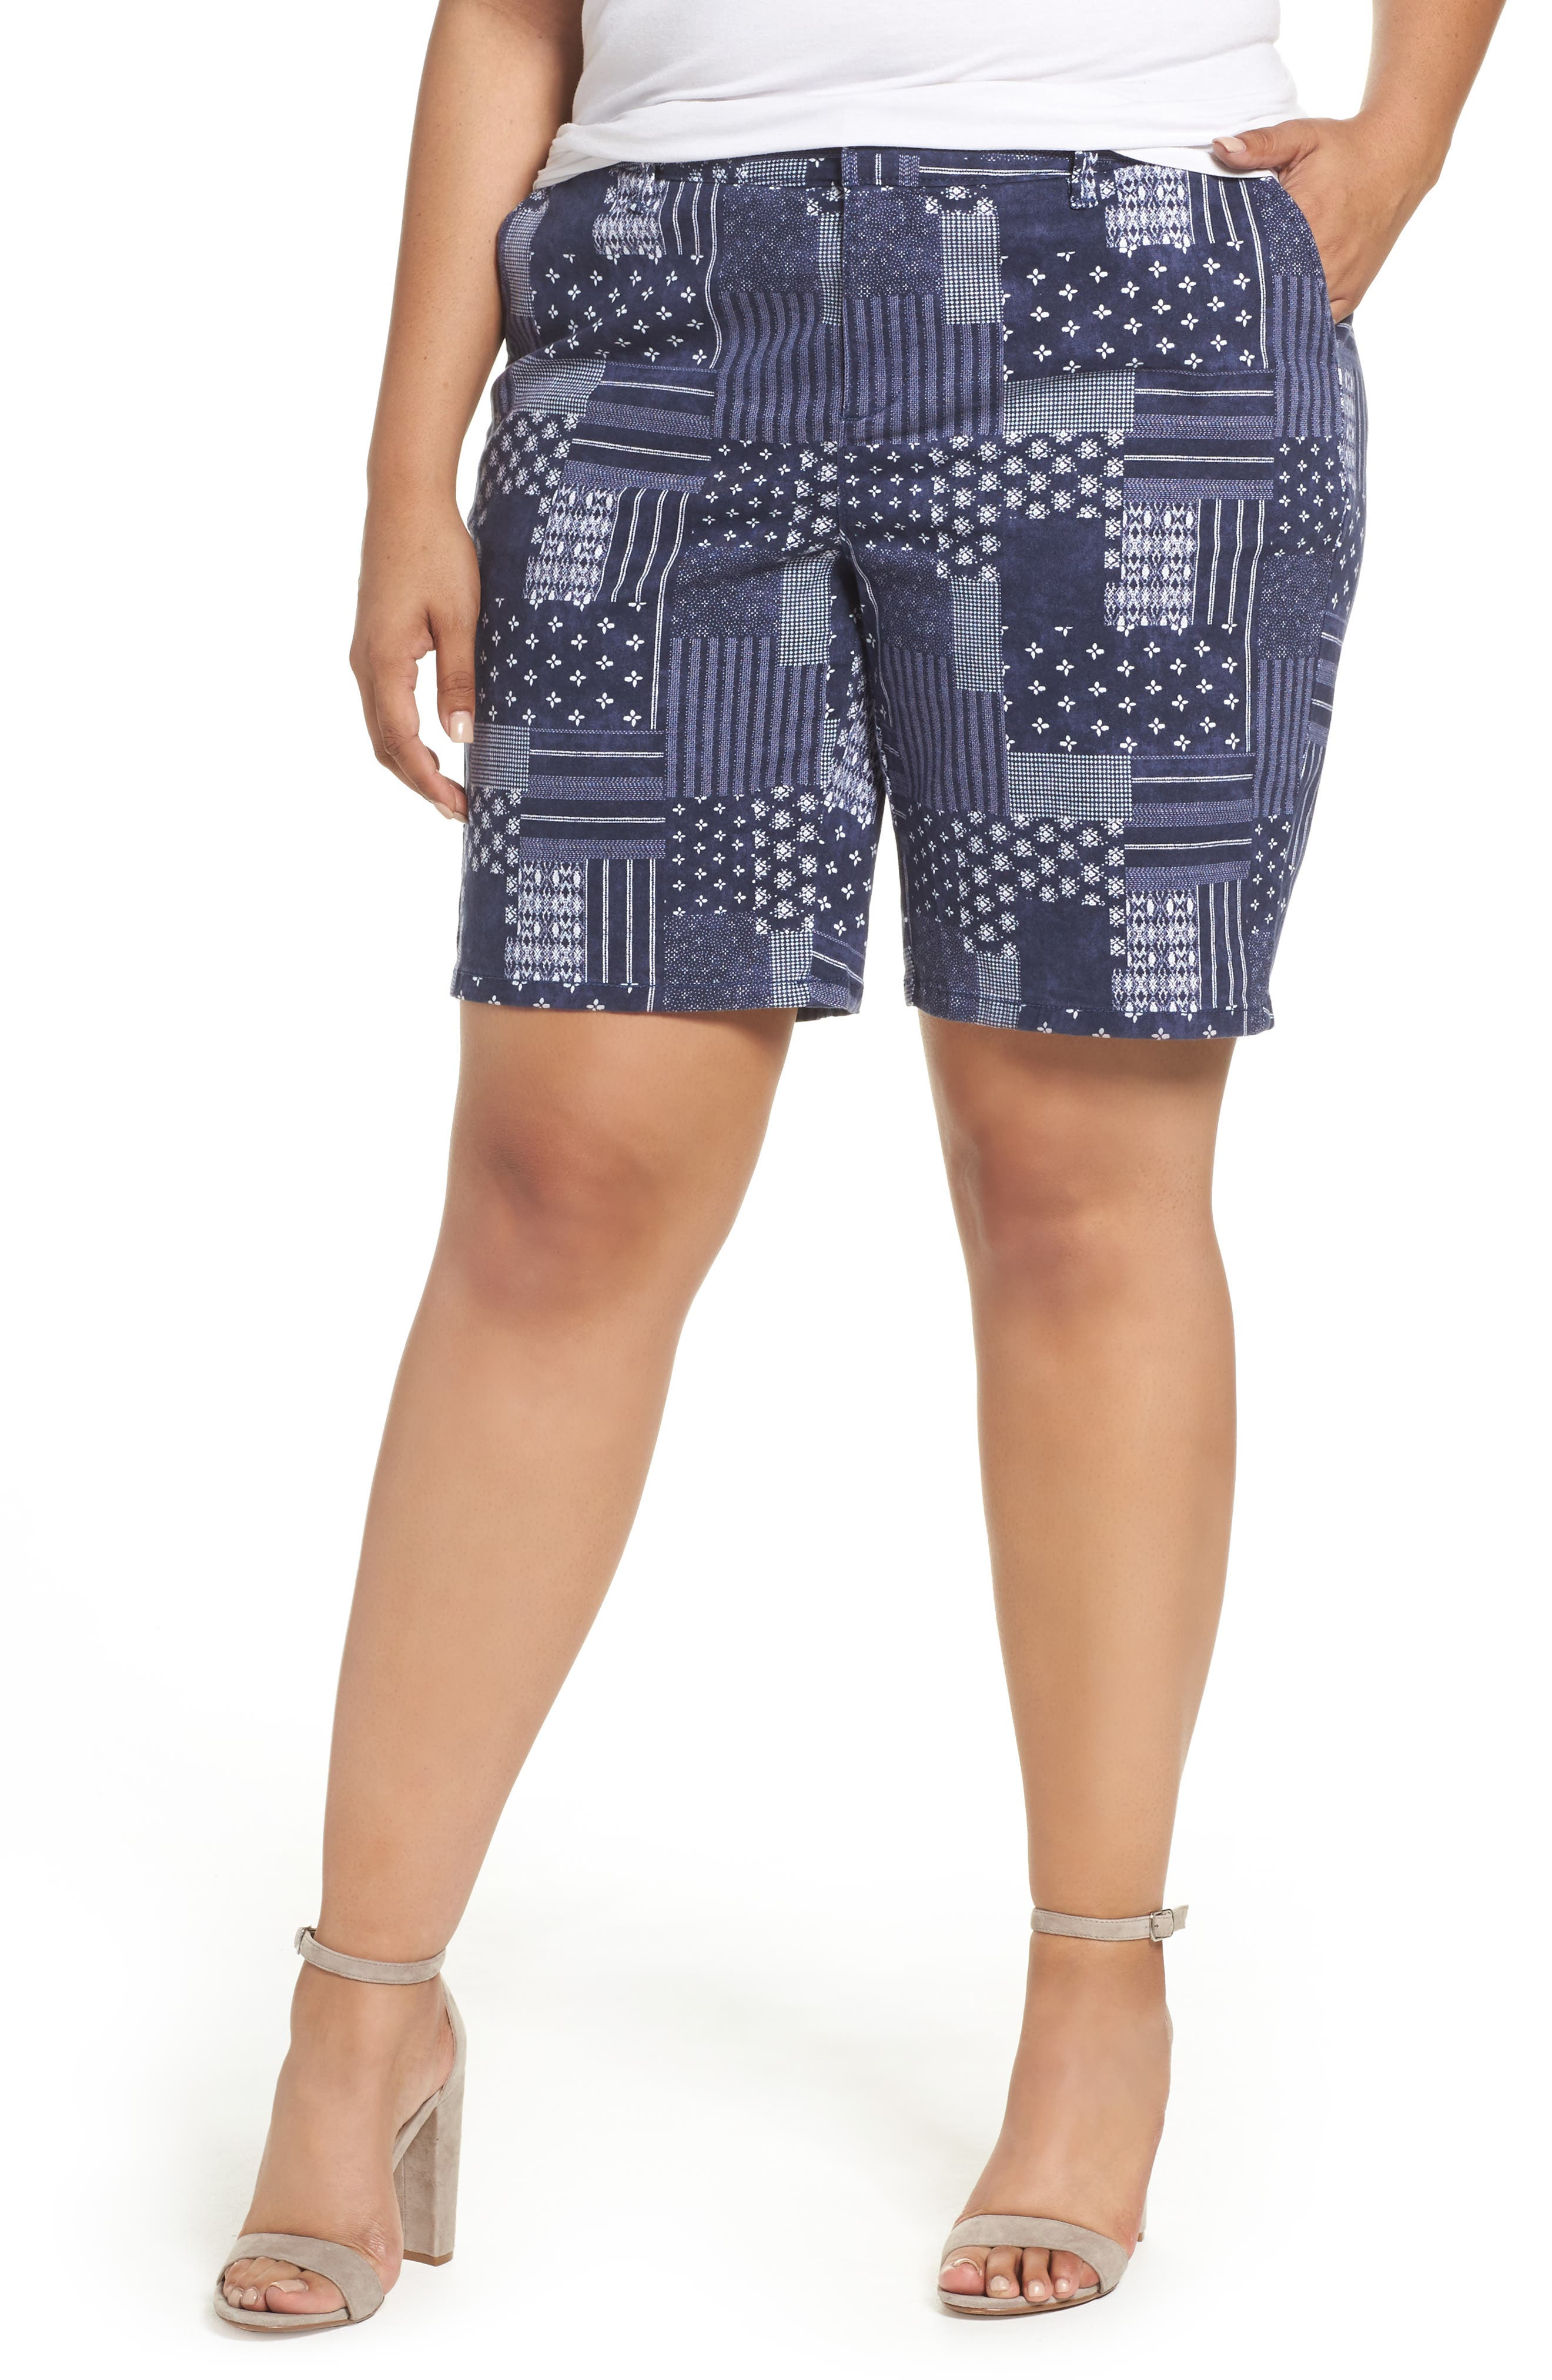 If you prefer classic khaki shorts, our we have styles for every girl. Go for our shortest short shorts, medium length midi shorts, or classic Bermudas. Just like we have all the denim washes you want (seriously – from black denim to white, from rich indigo to distressed and faded vintage-inspired shades), our women's twill shorts come in a huge assortment of colors.